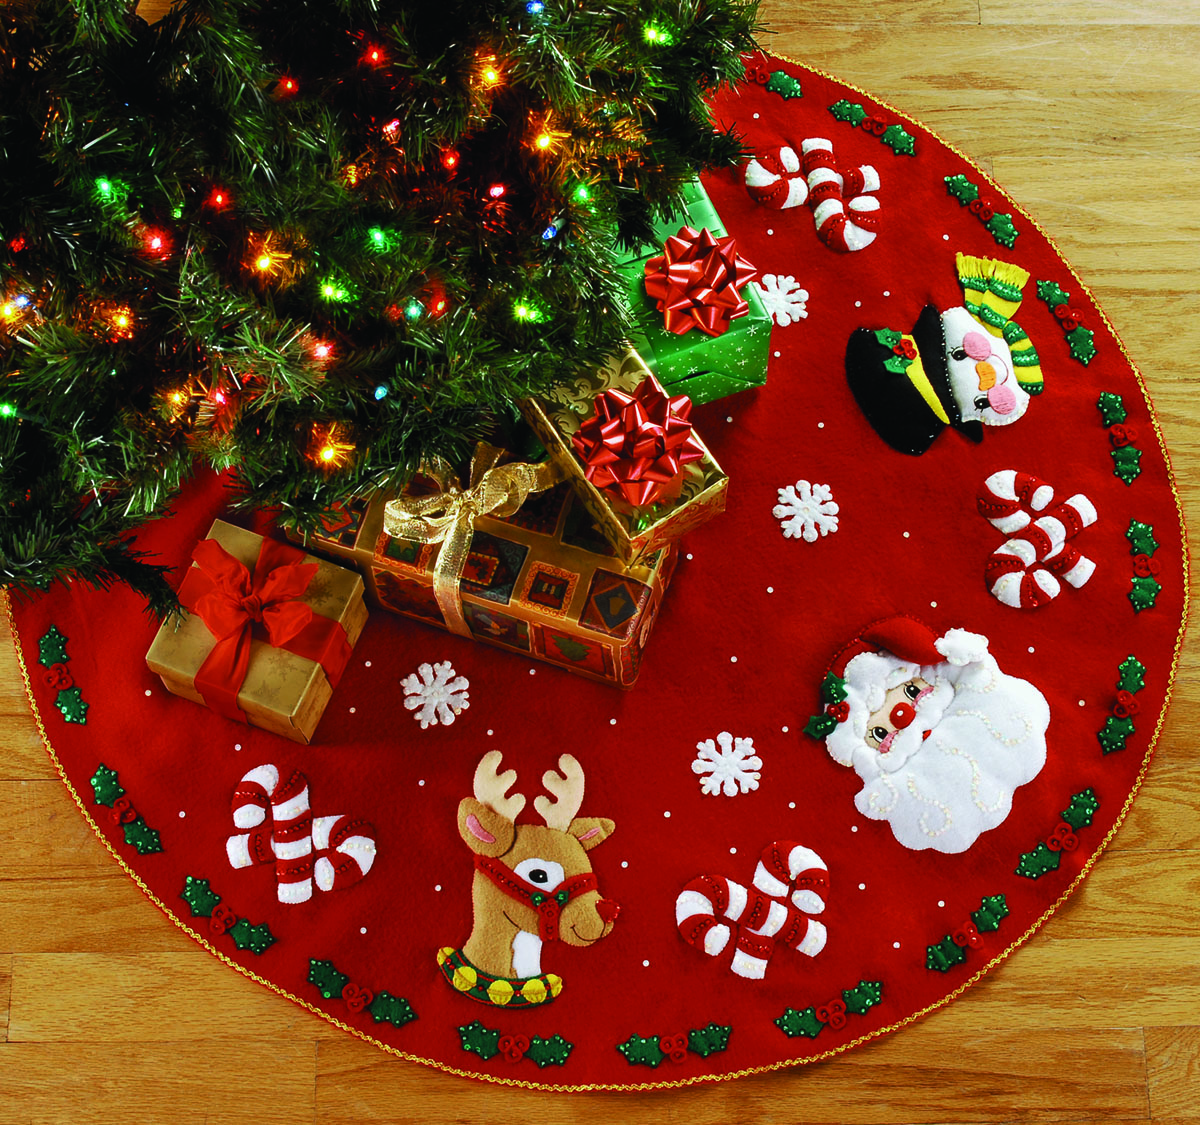 Santa friends quot bucilla felt christmas tree skirt kit